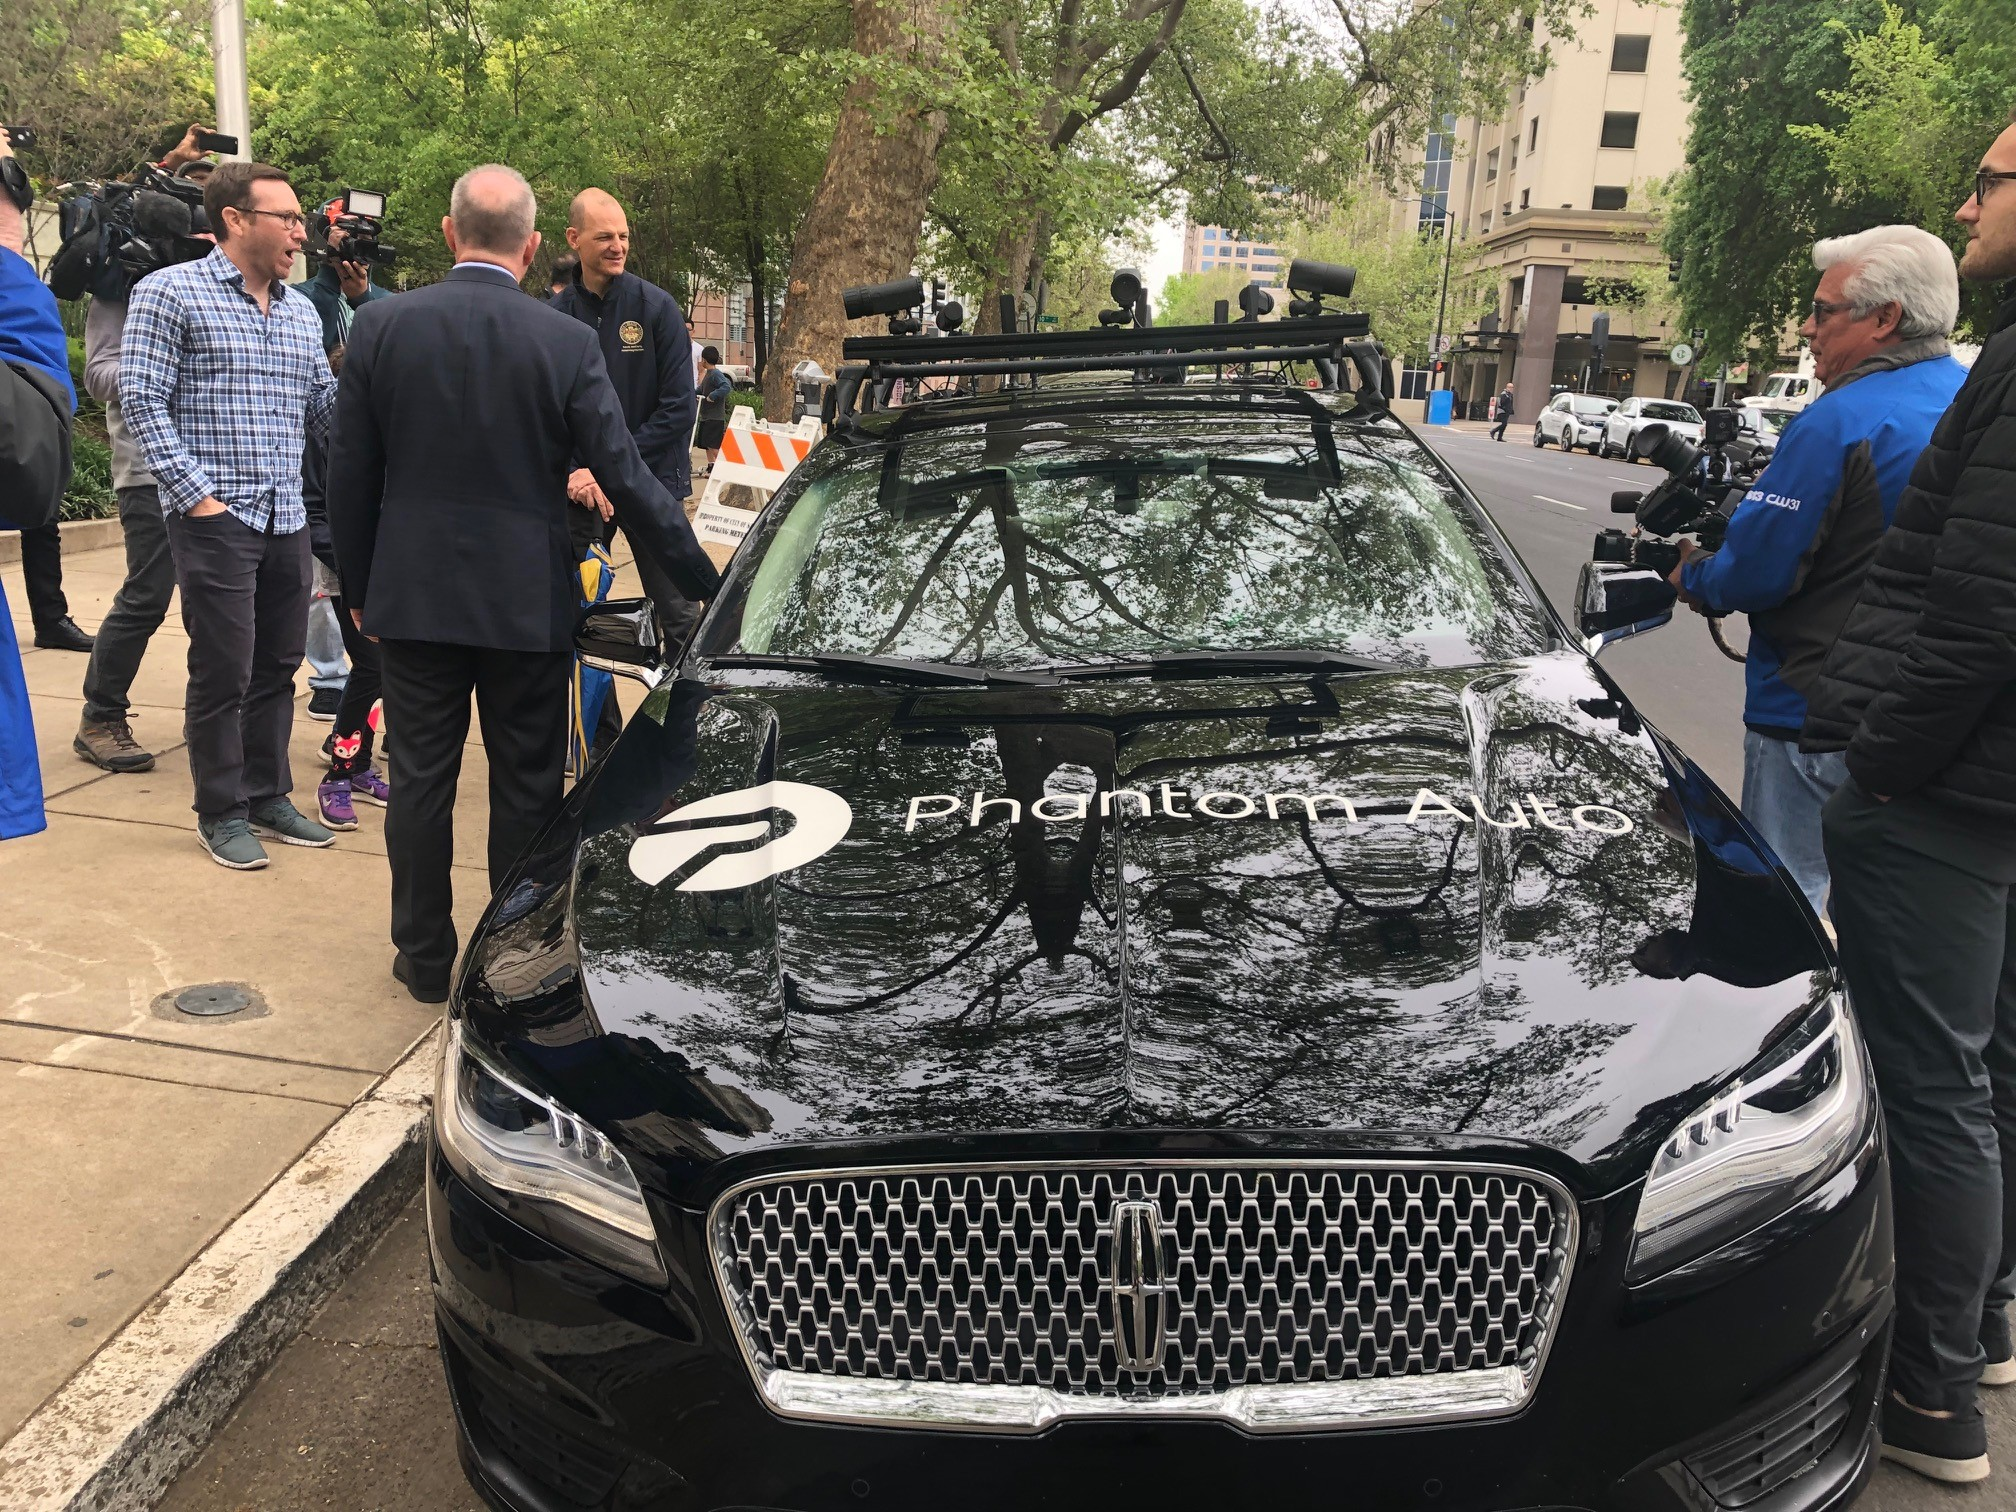 The Phantom Auto vehicle parked outside City Hall